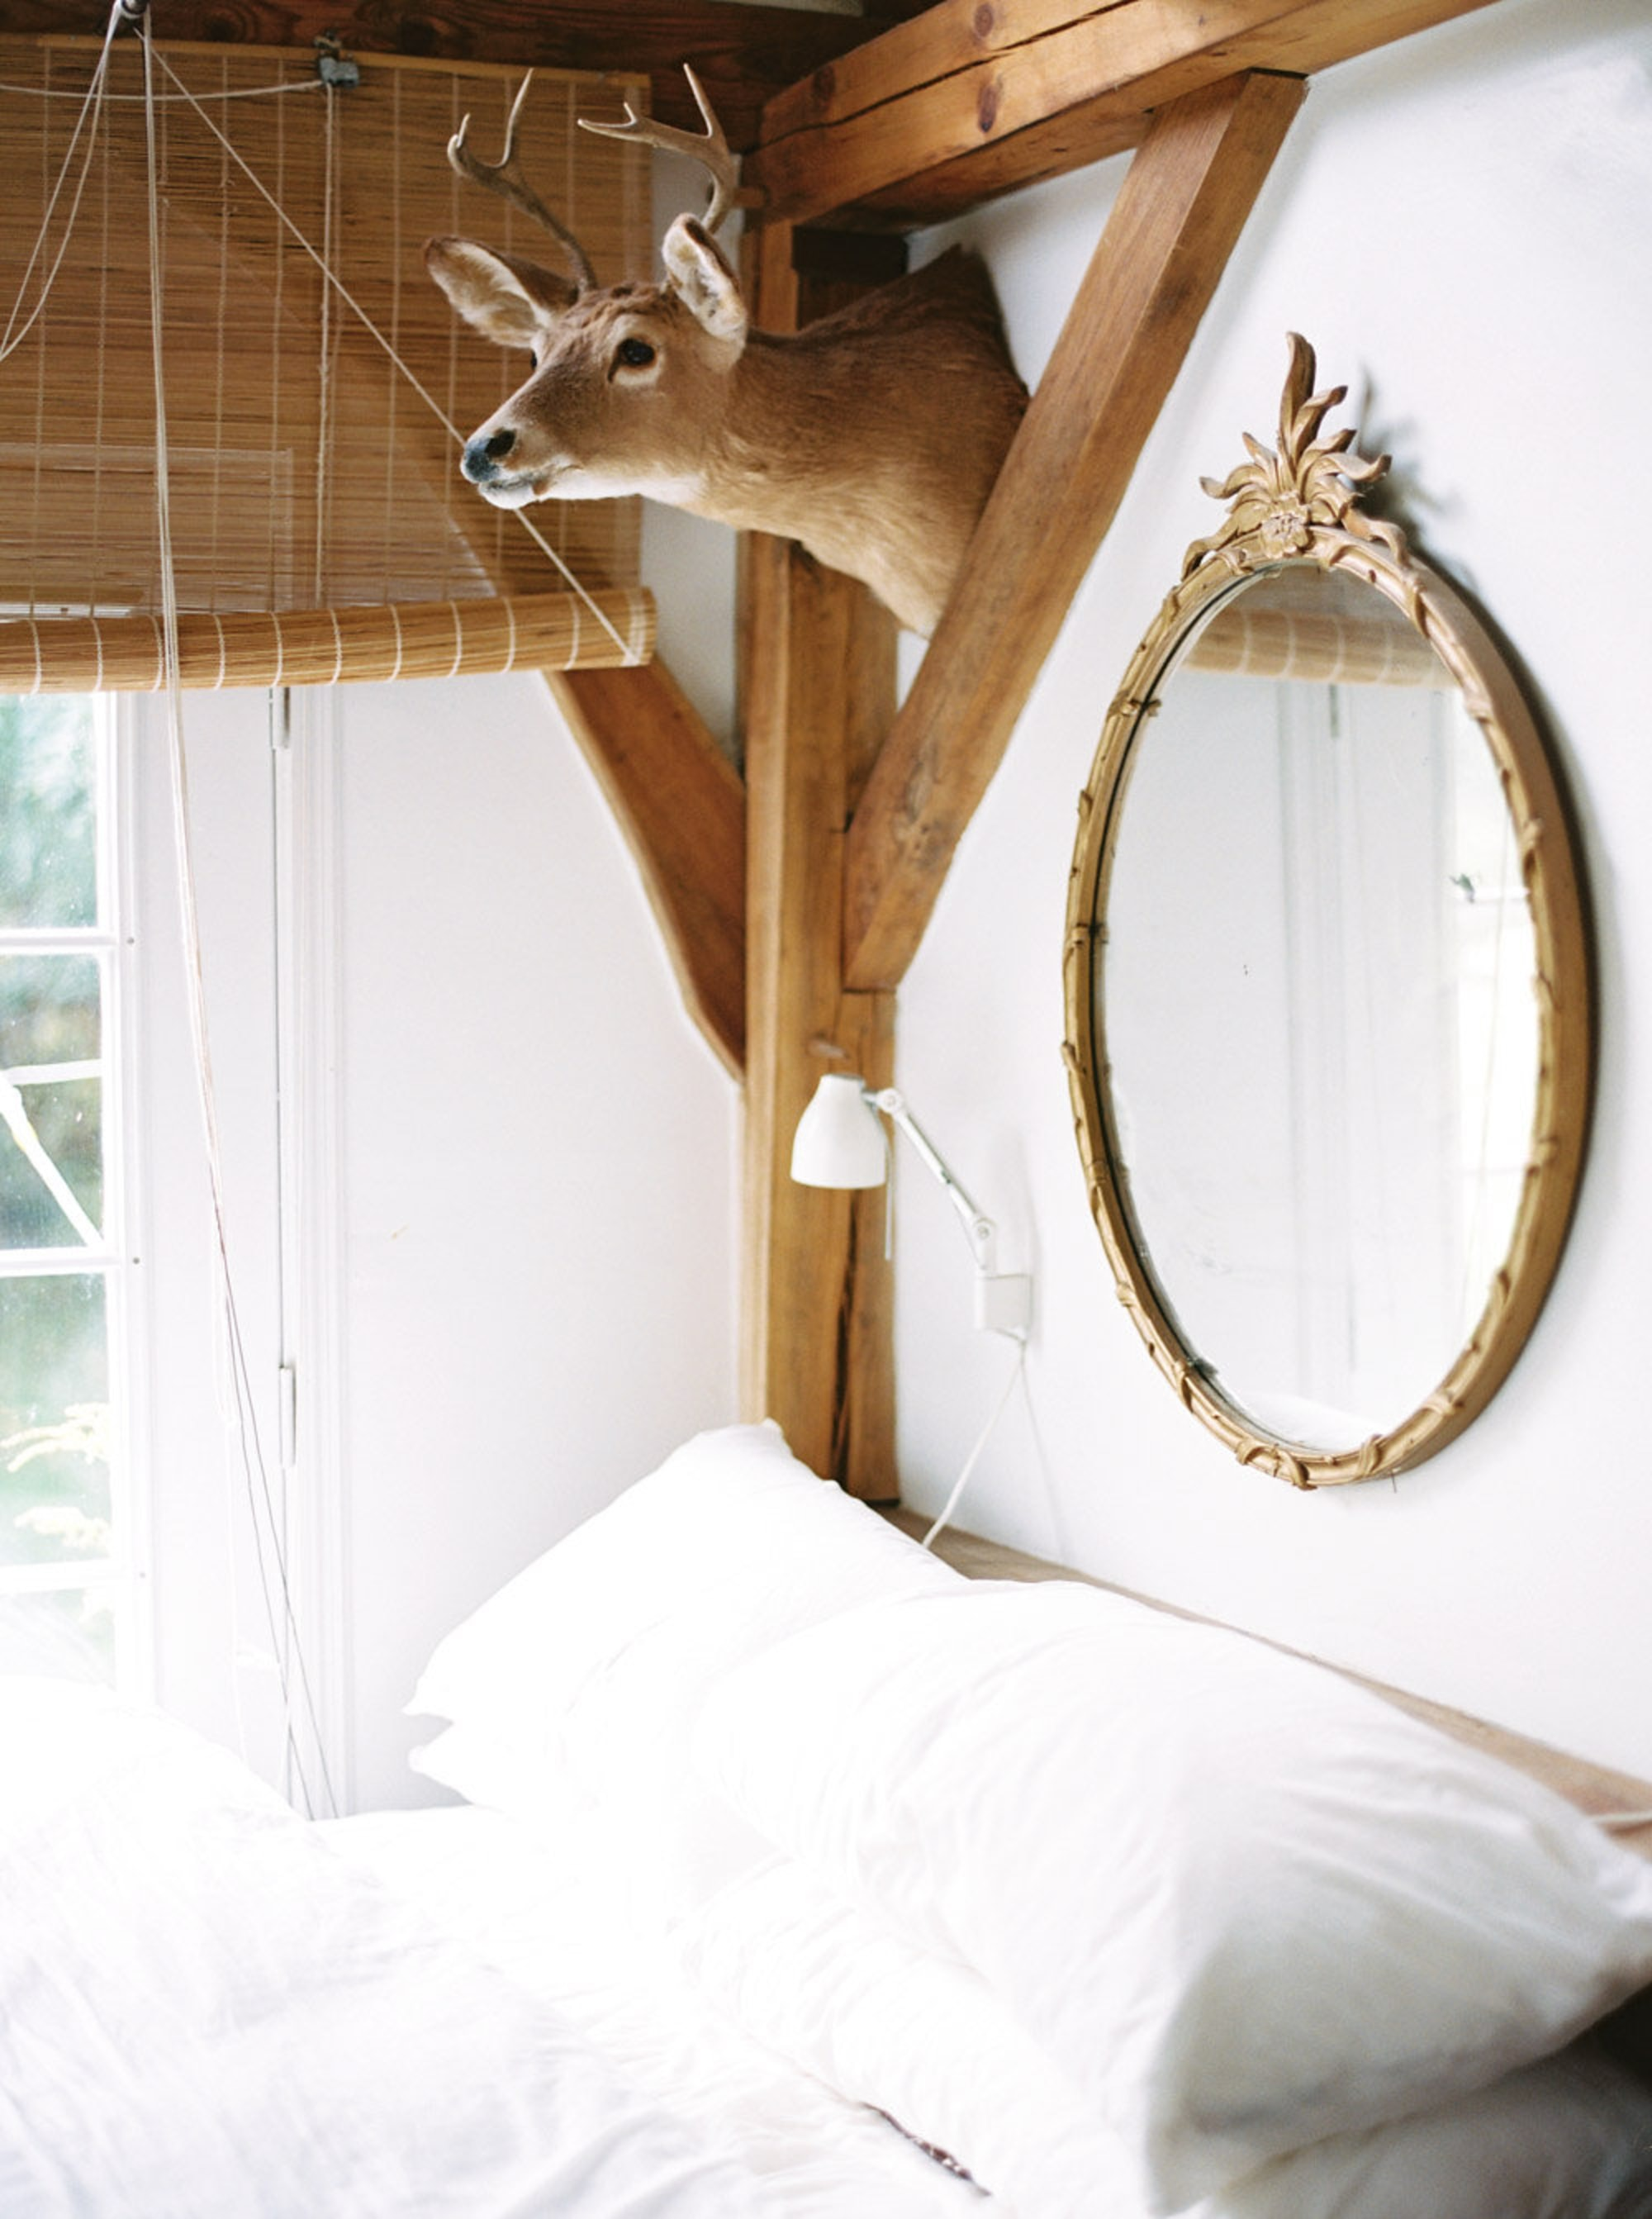 Bed with deer head mounted above